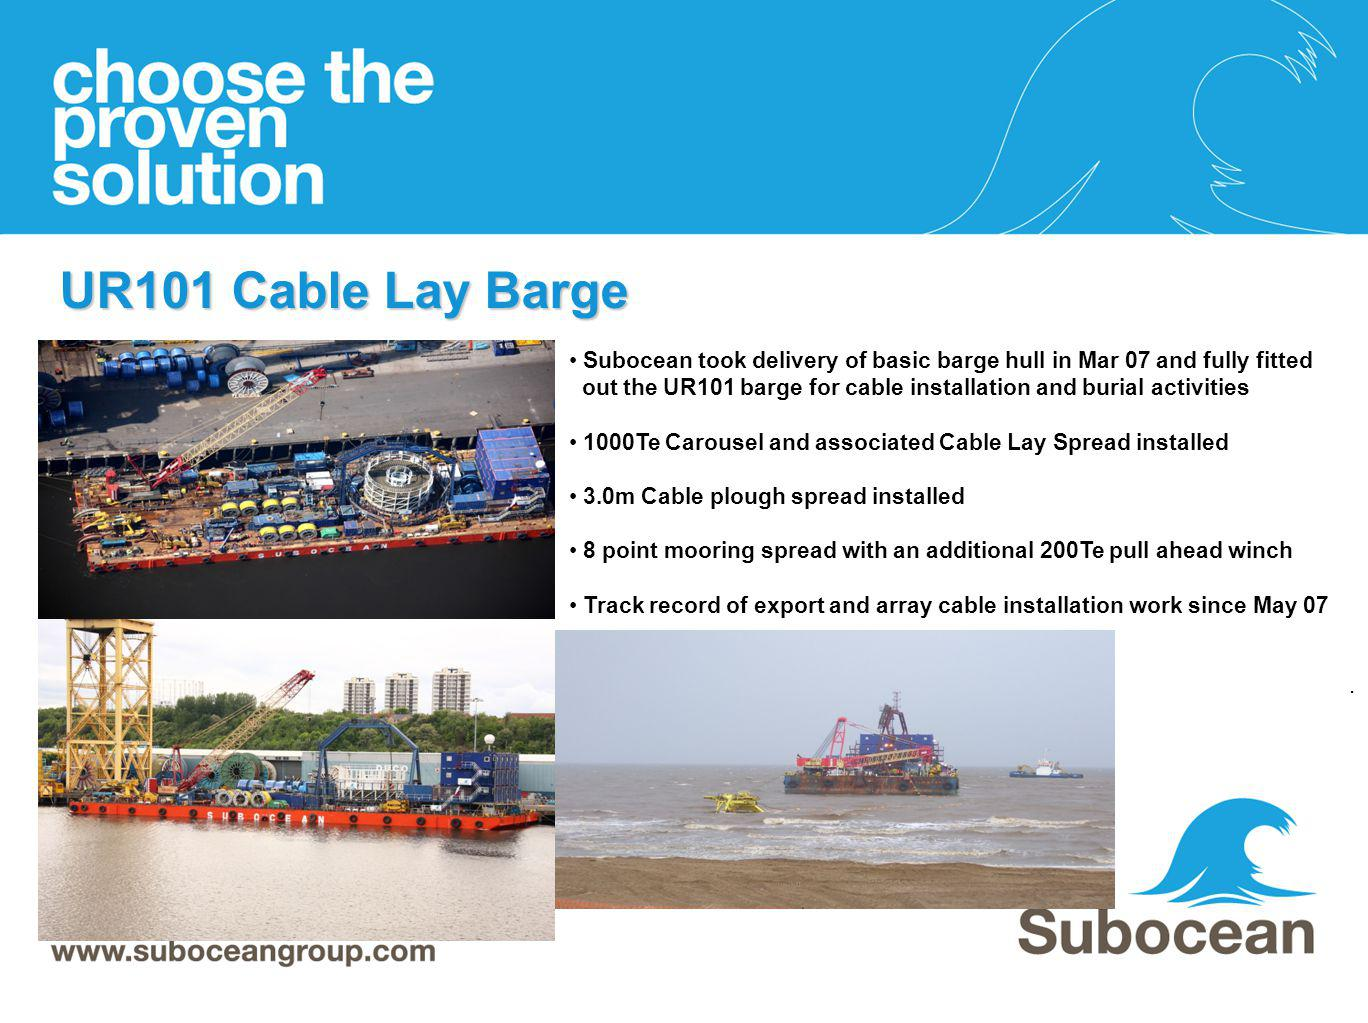 UR101 Cable Lay Barge Subocean took delivery of basic barge hull in Mar 07 and fully fitted.